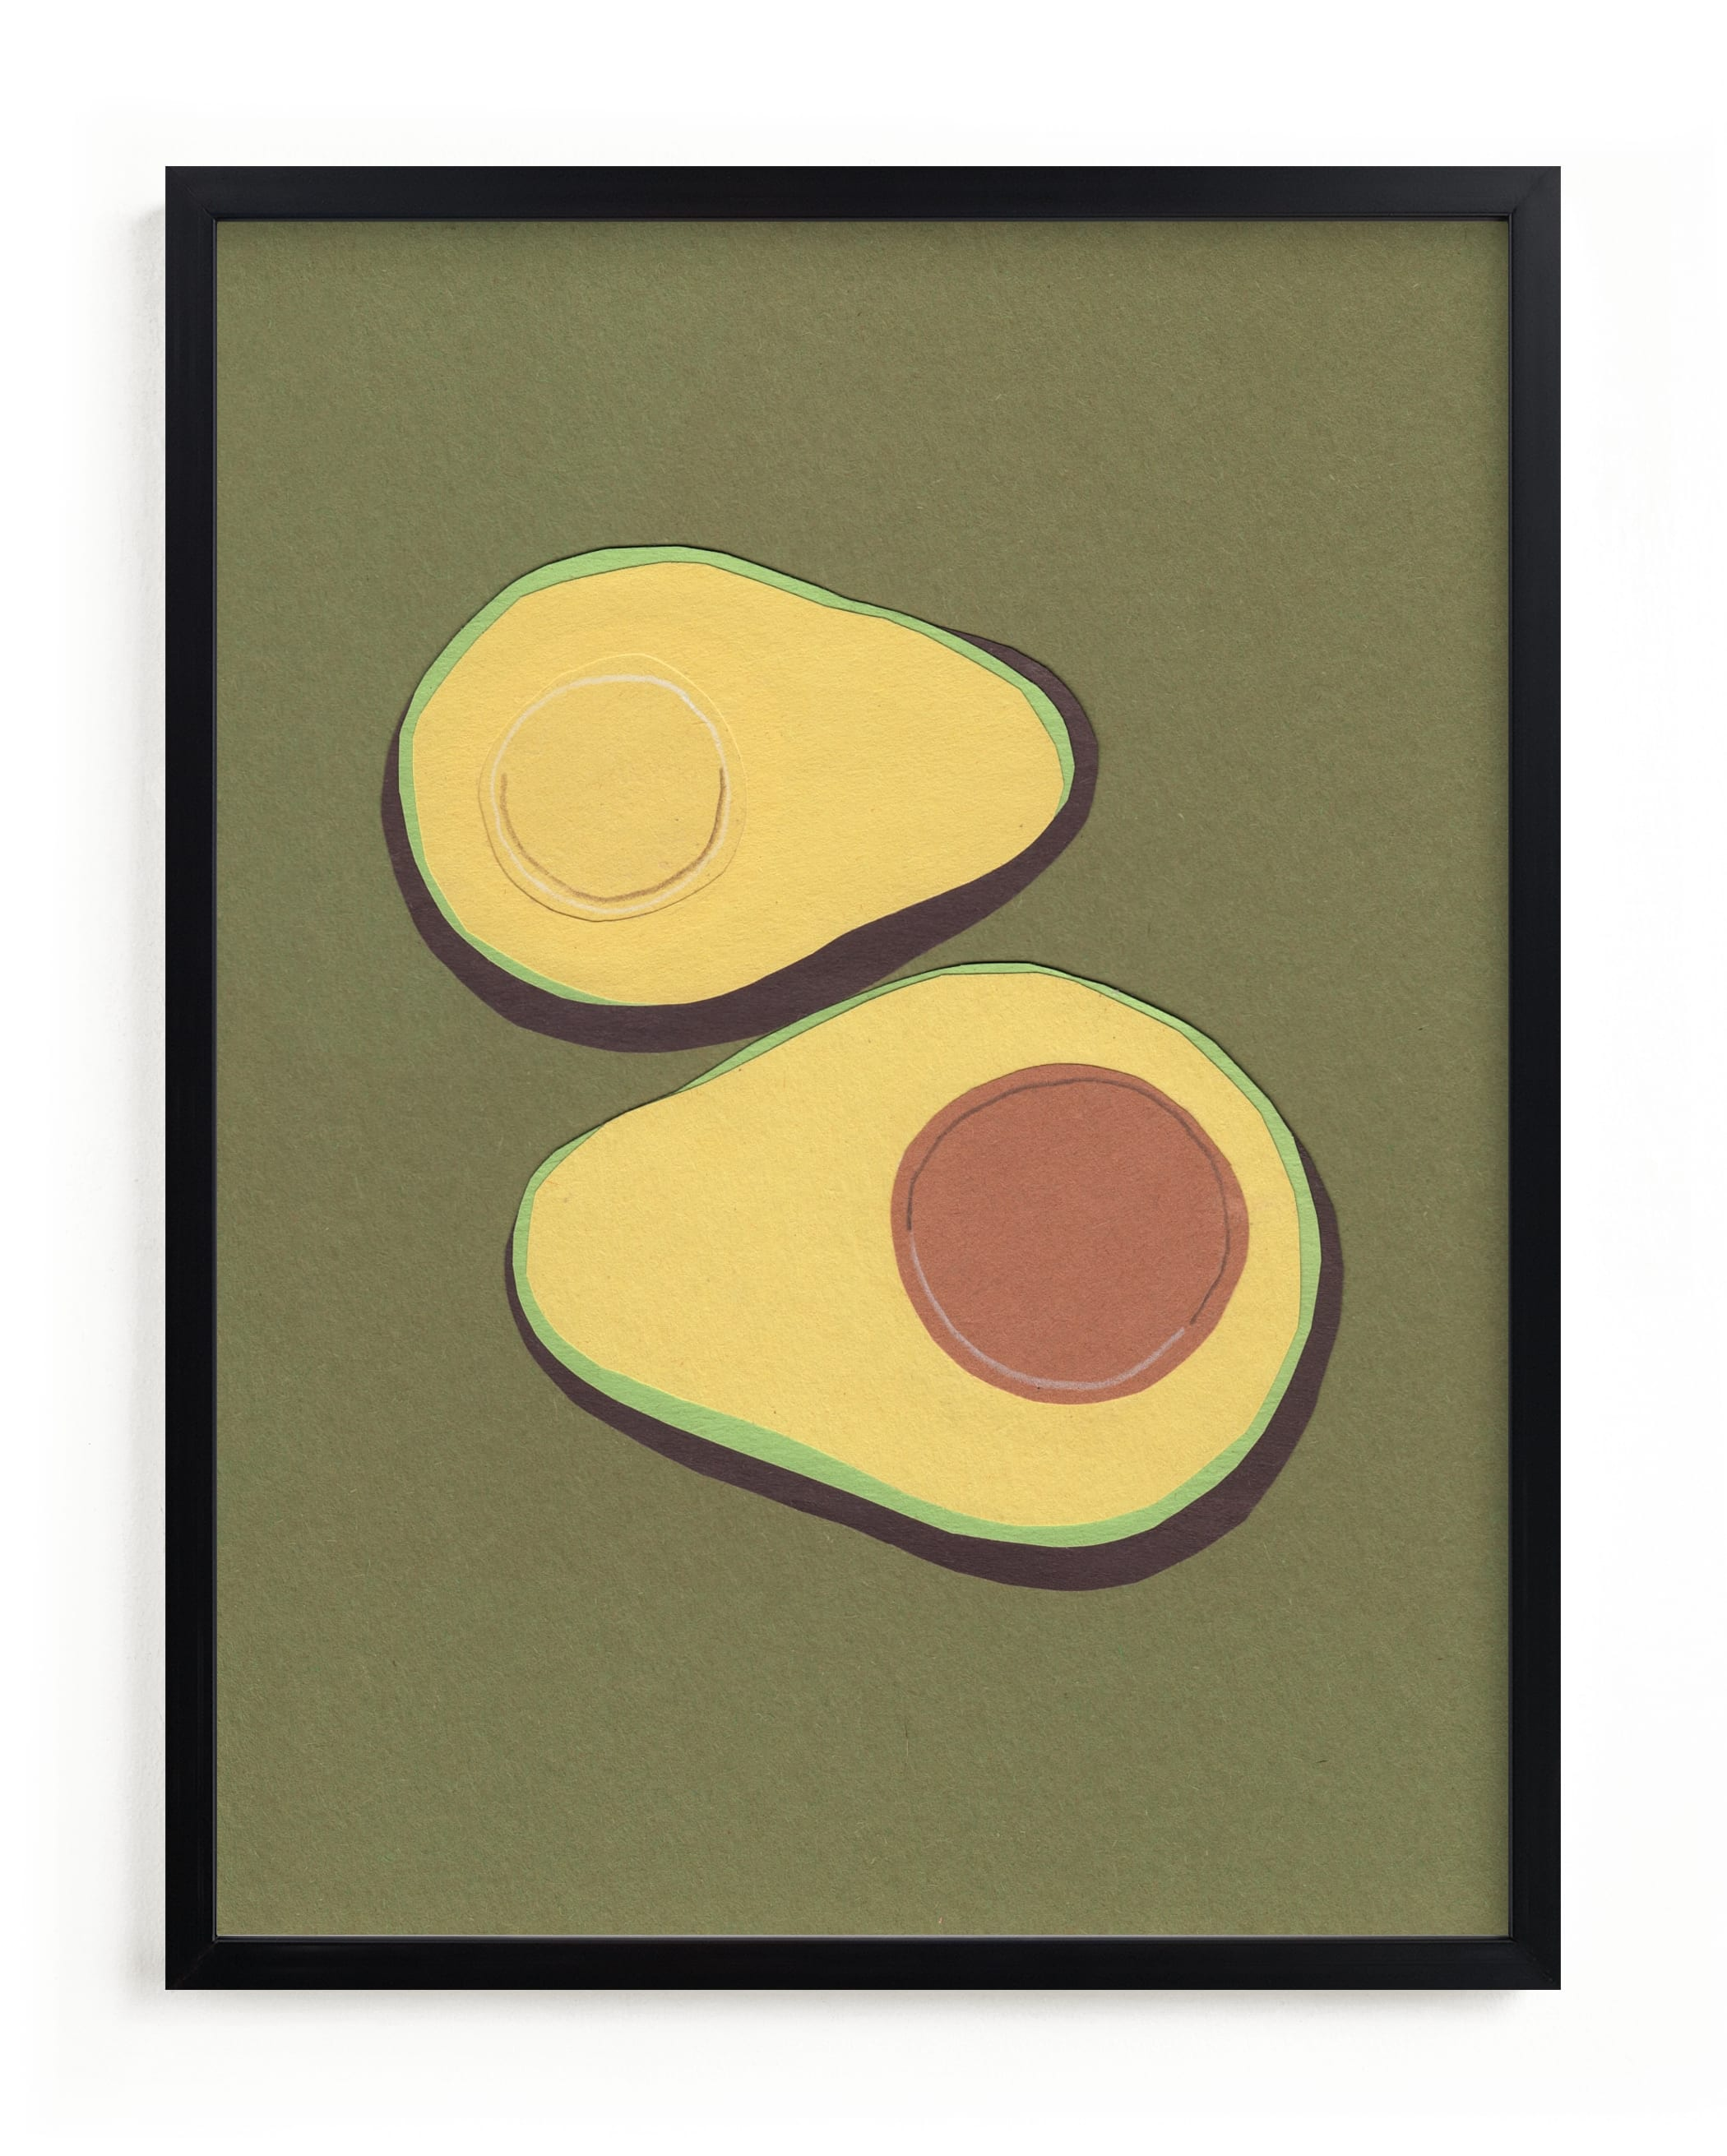 This is a brown art by Elliot Stokes called avocado.